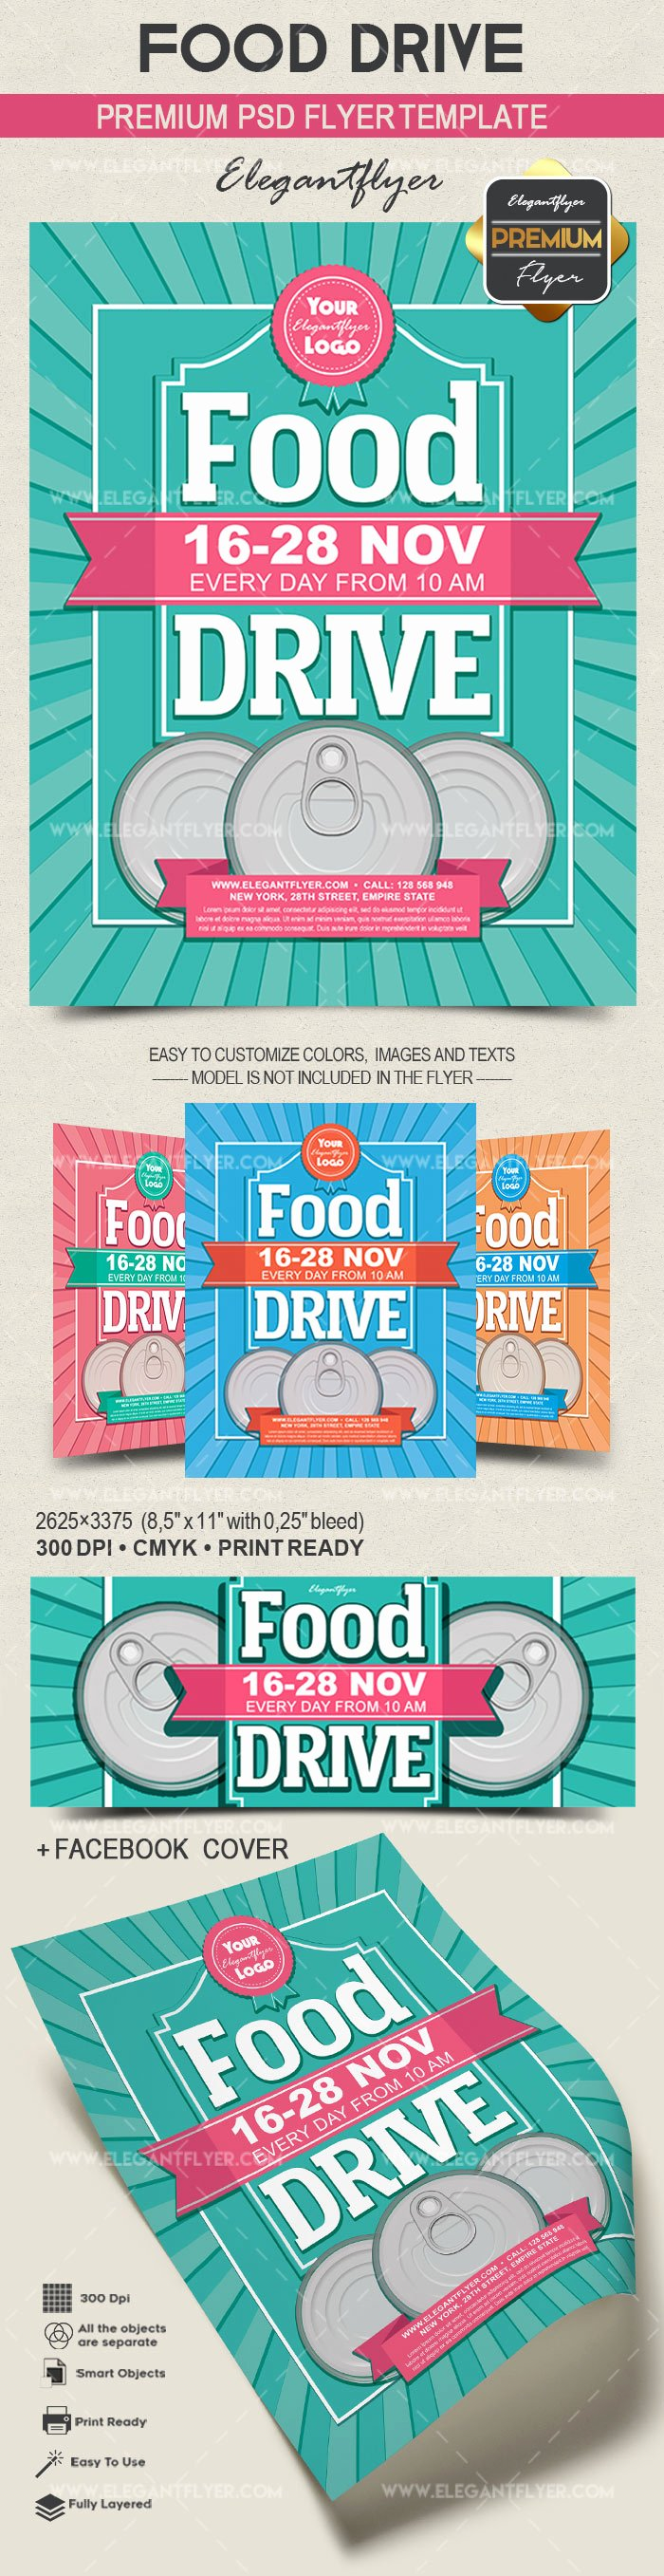 Food Drive Flyer Template New Food Drive – Flyer Psd Template – by Elegantflyer